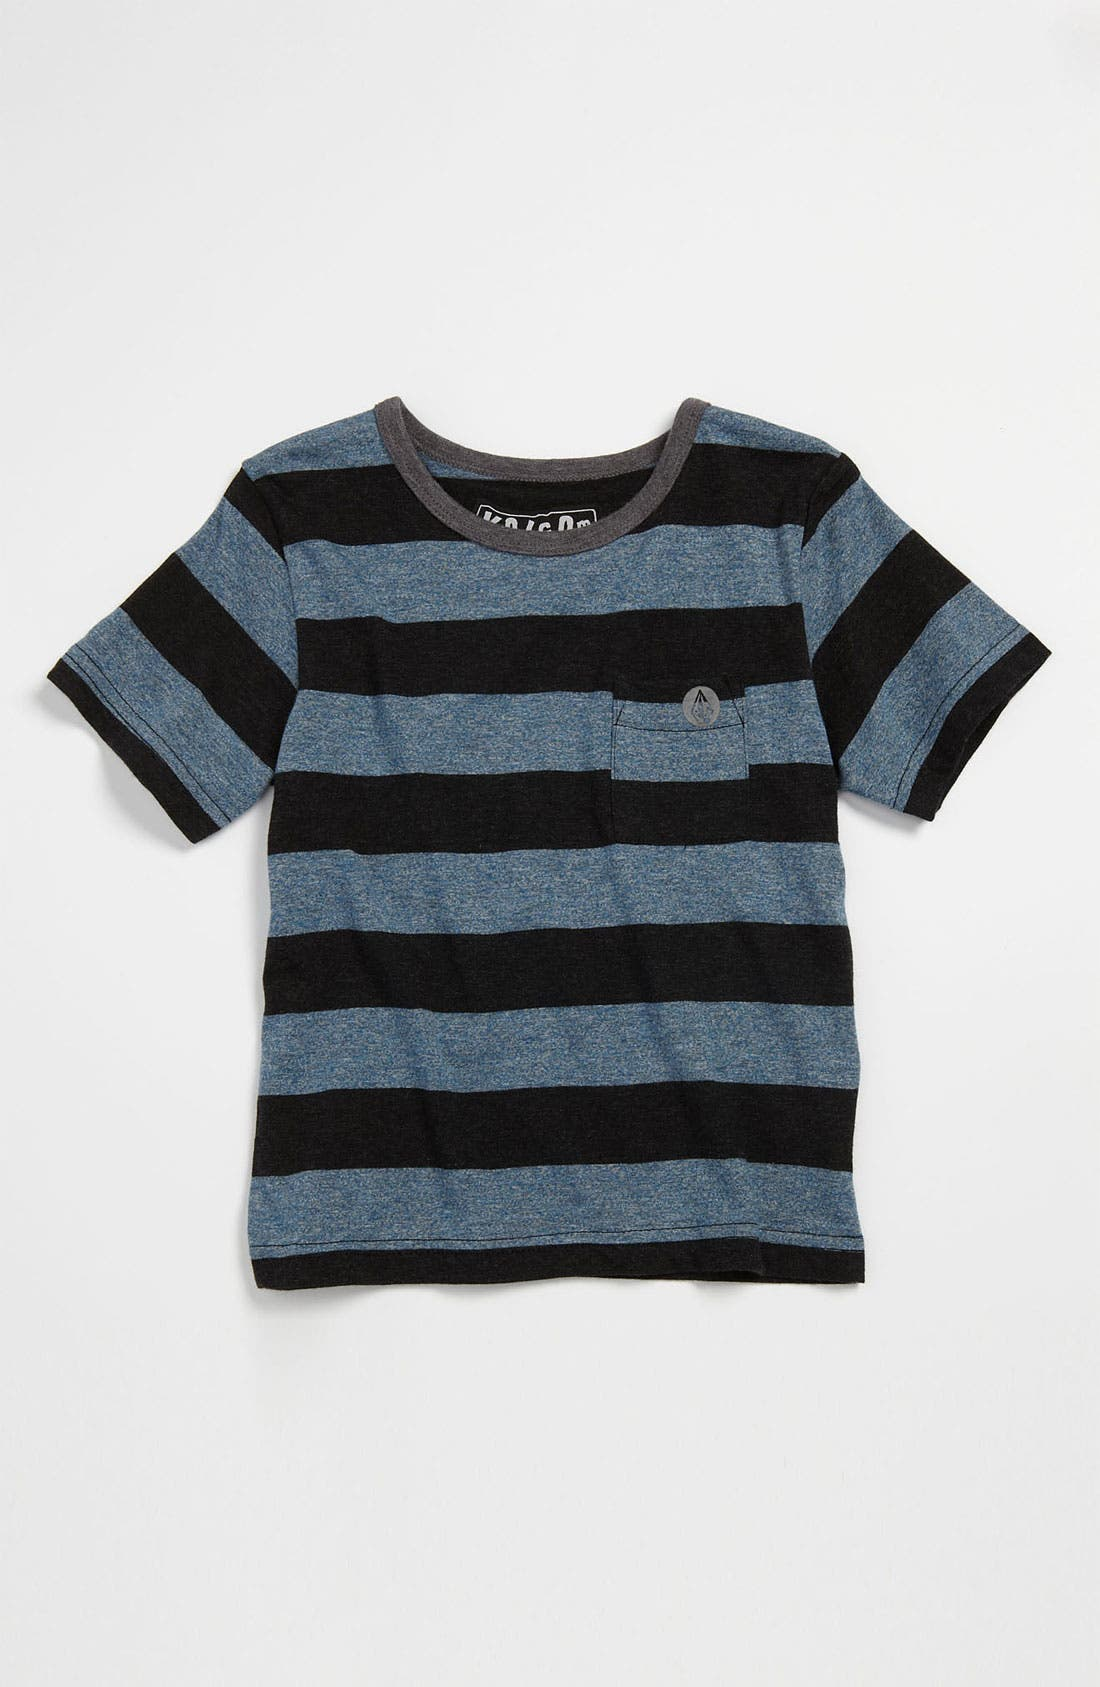 Main Image - Volcom 'Fanged Logo' T-Shirt (Toddler)